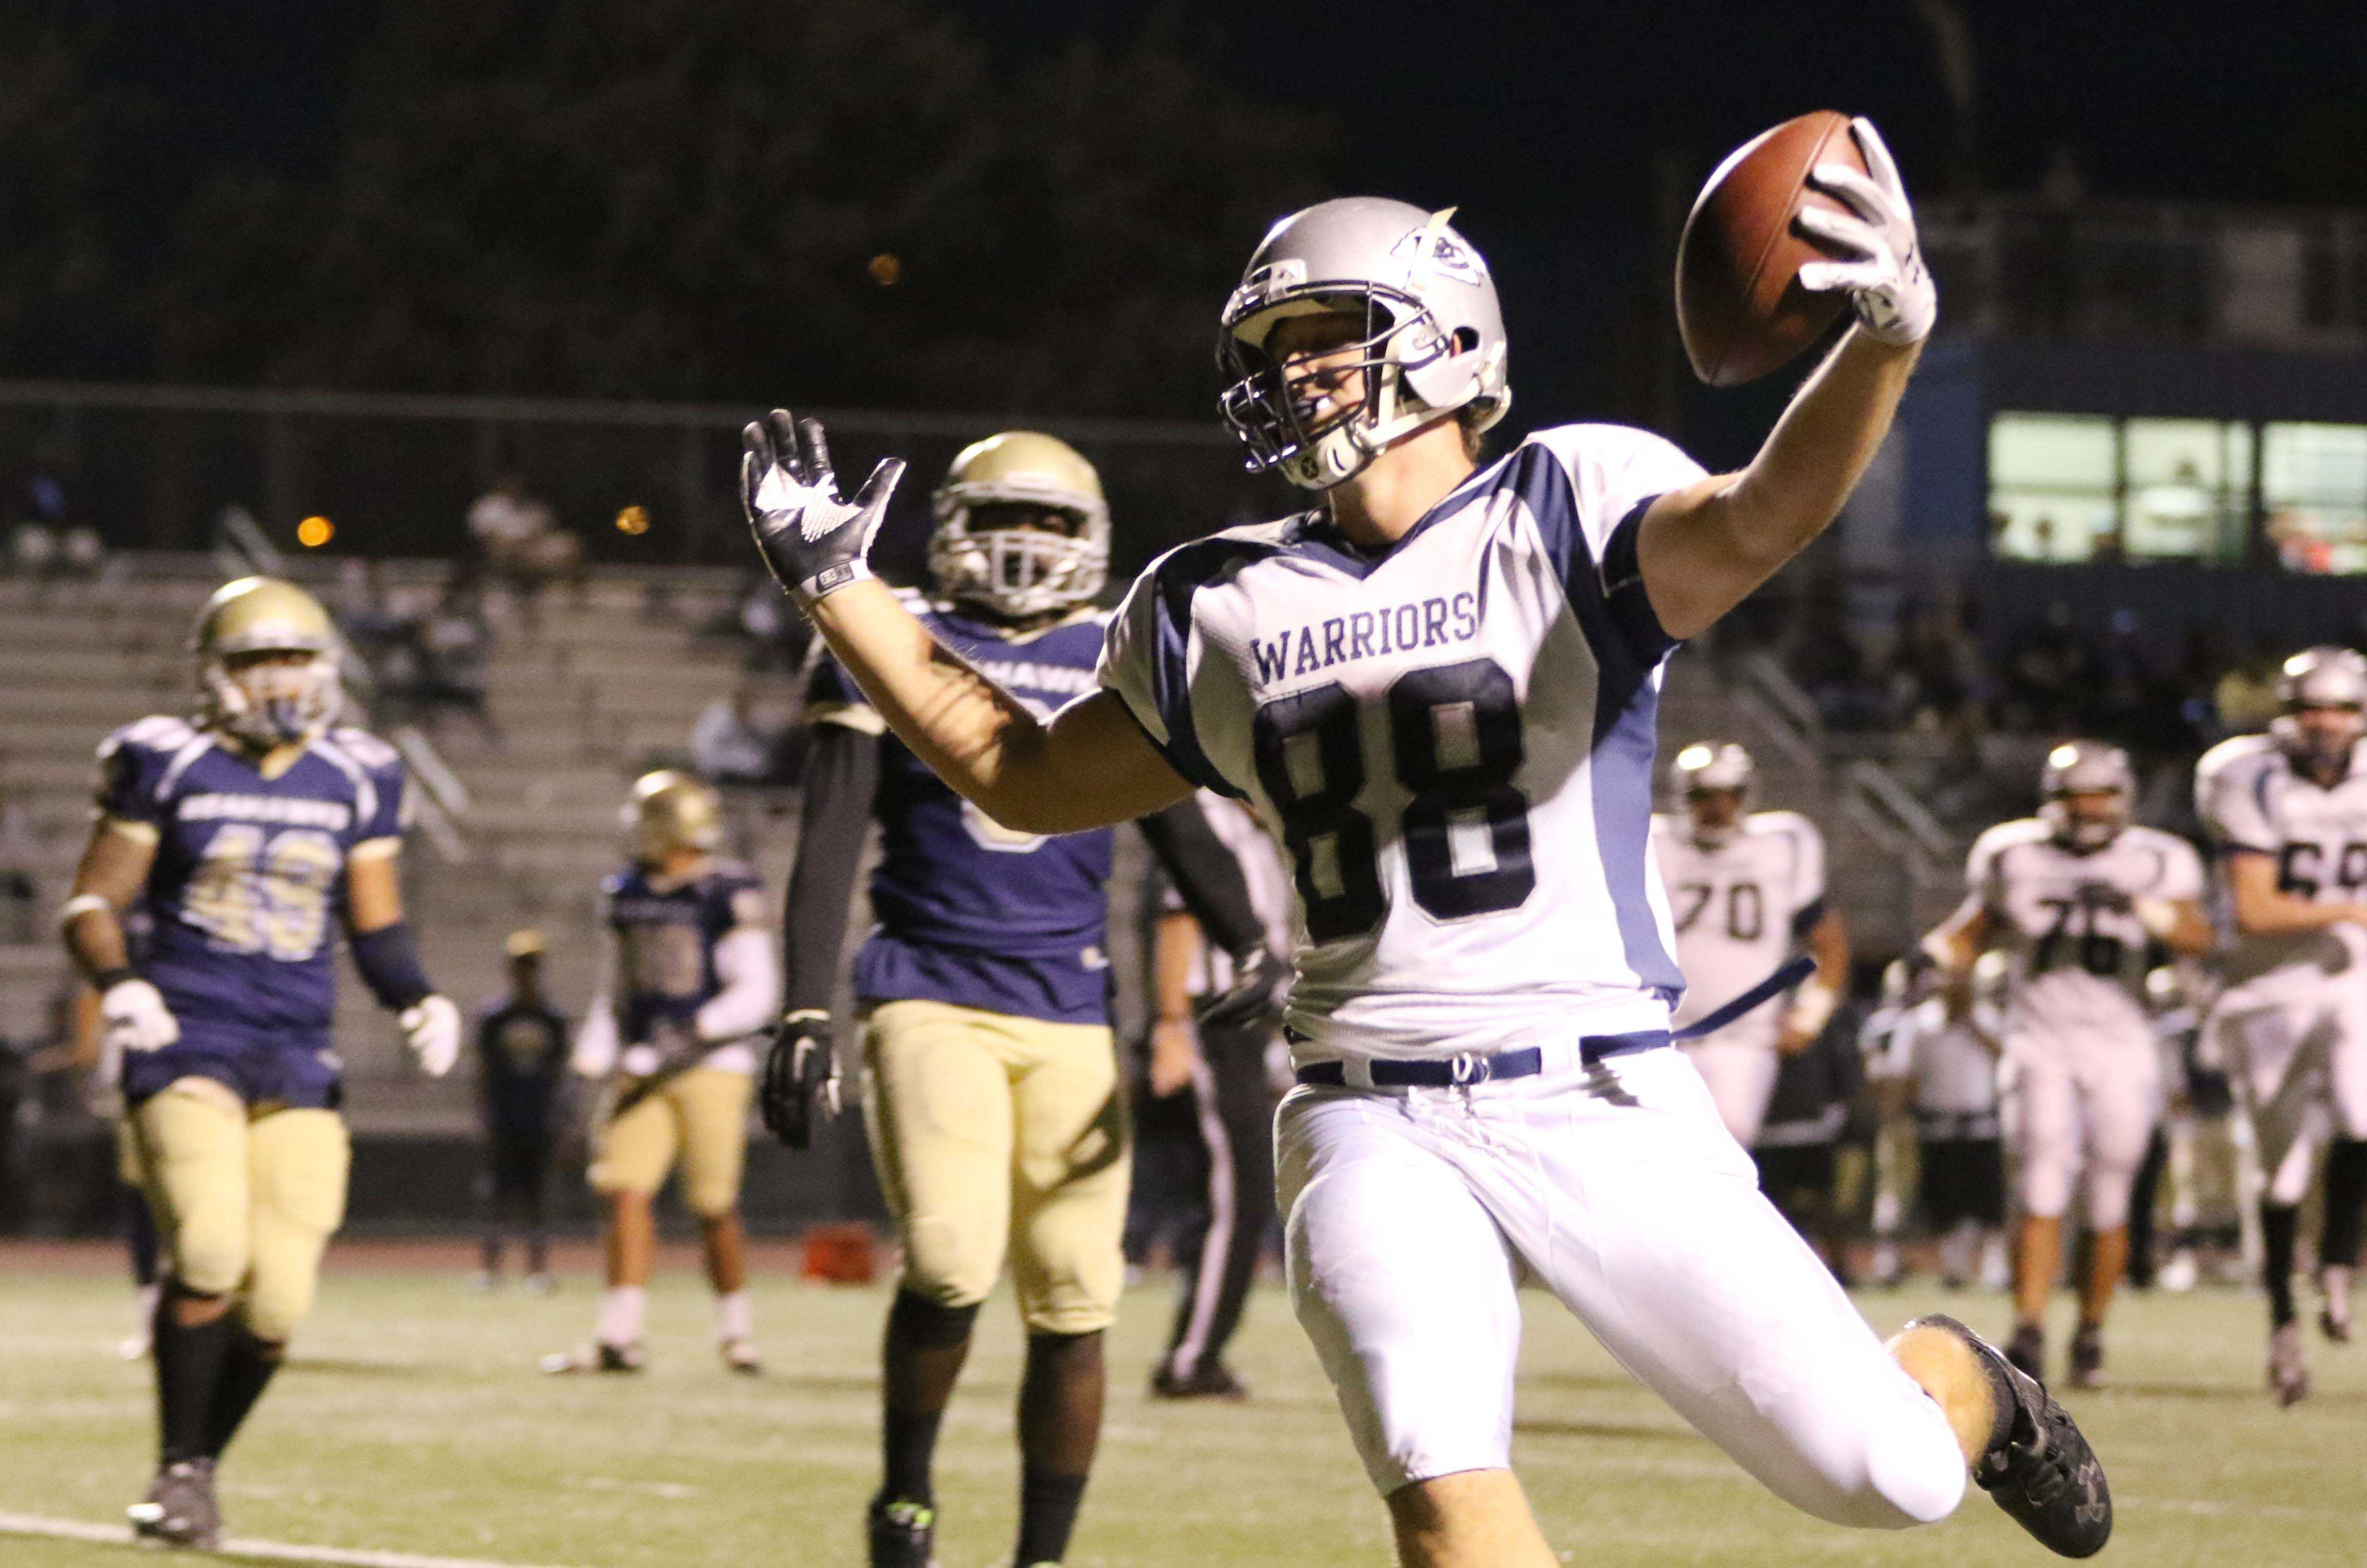 Warriors football wins rivalry game